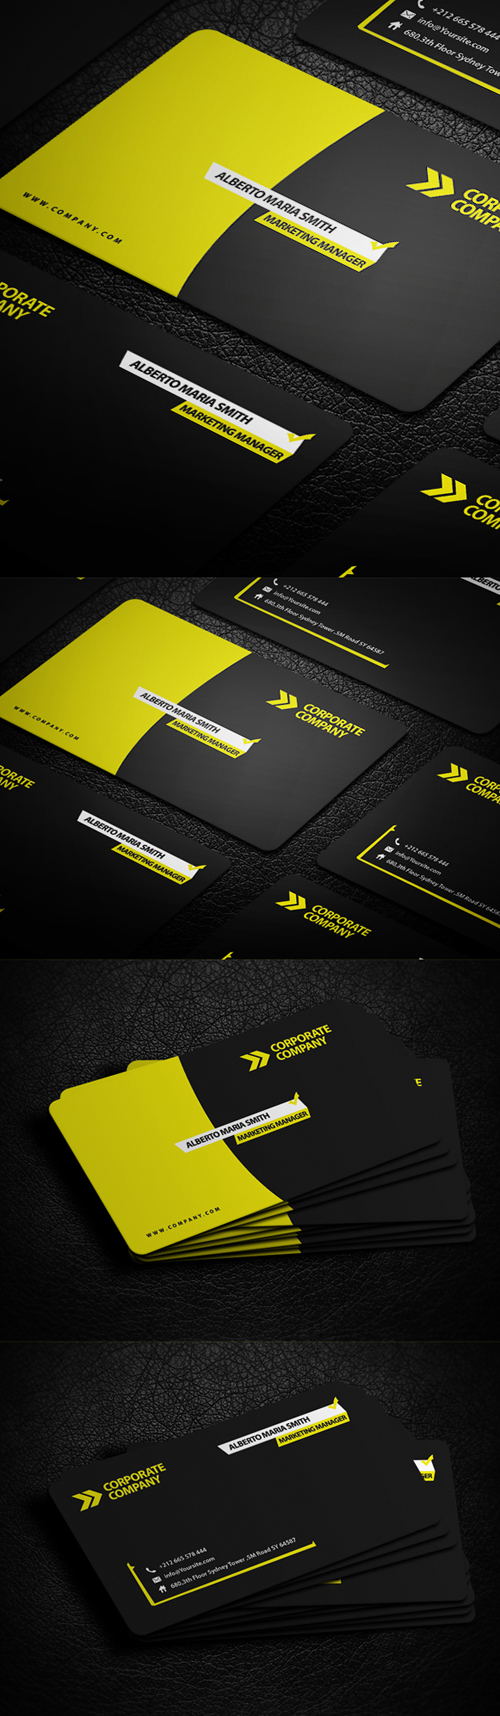 Business Card Templates (PSD) - 19